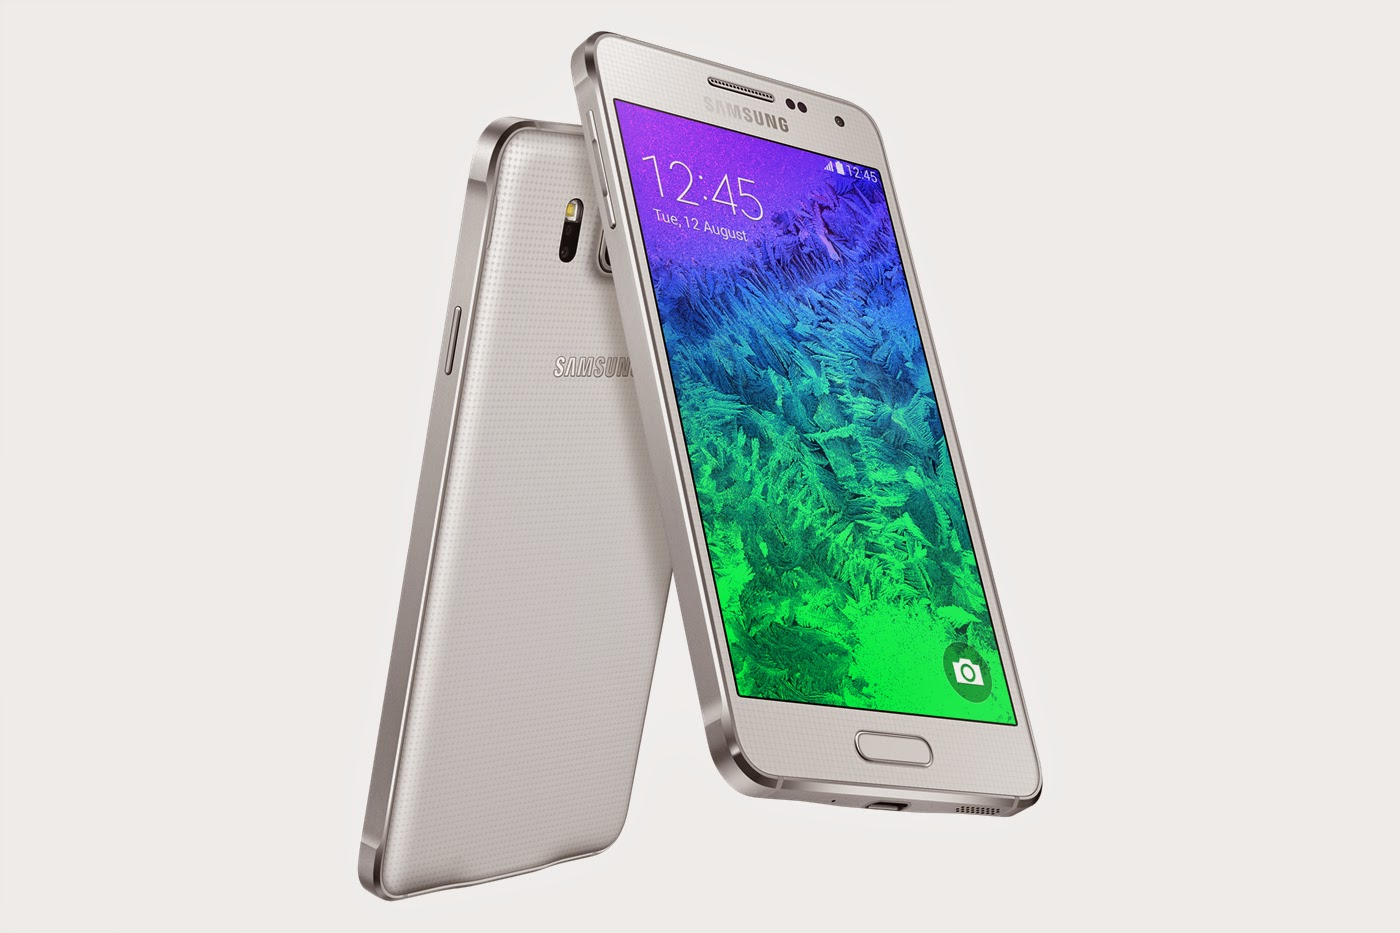 Samsung Galaxy Alpha: The first metal Android smartphone from Samsung